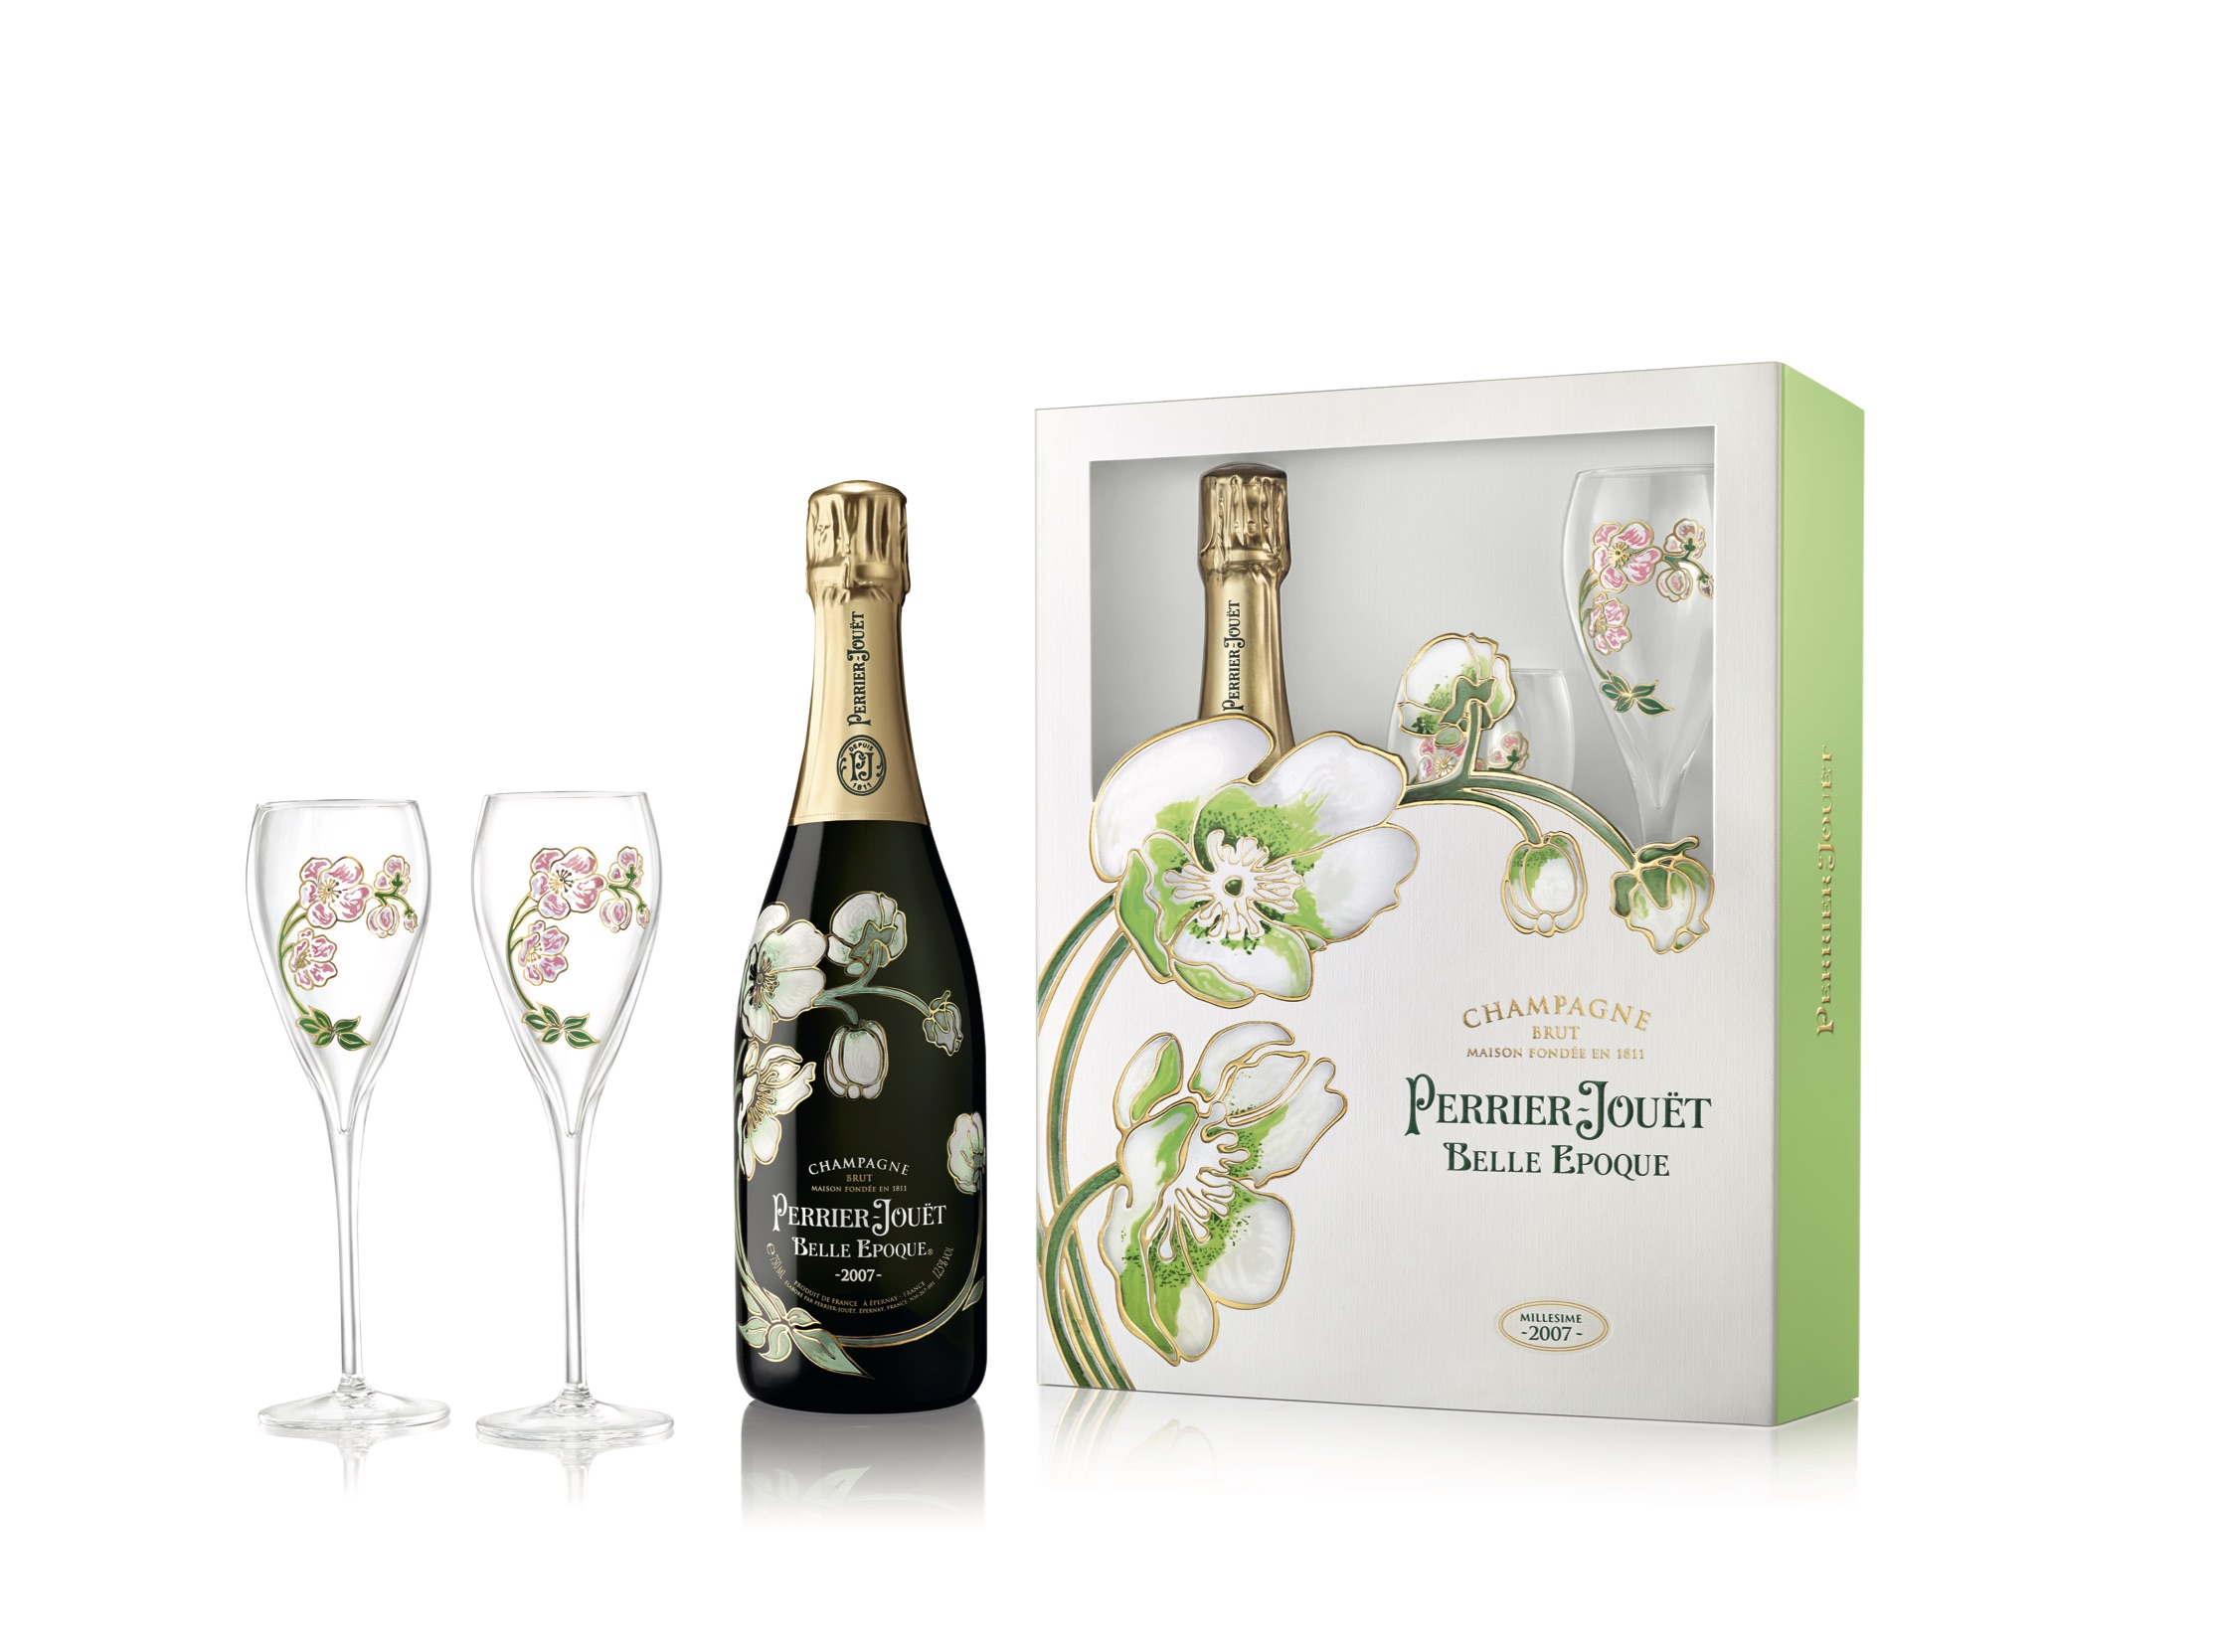 Perrier-Jouët Belle Epoque Gift Set With Flutes